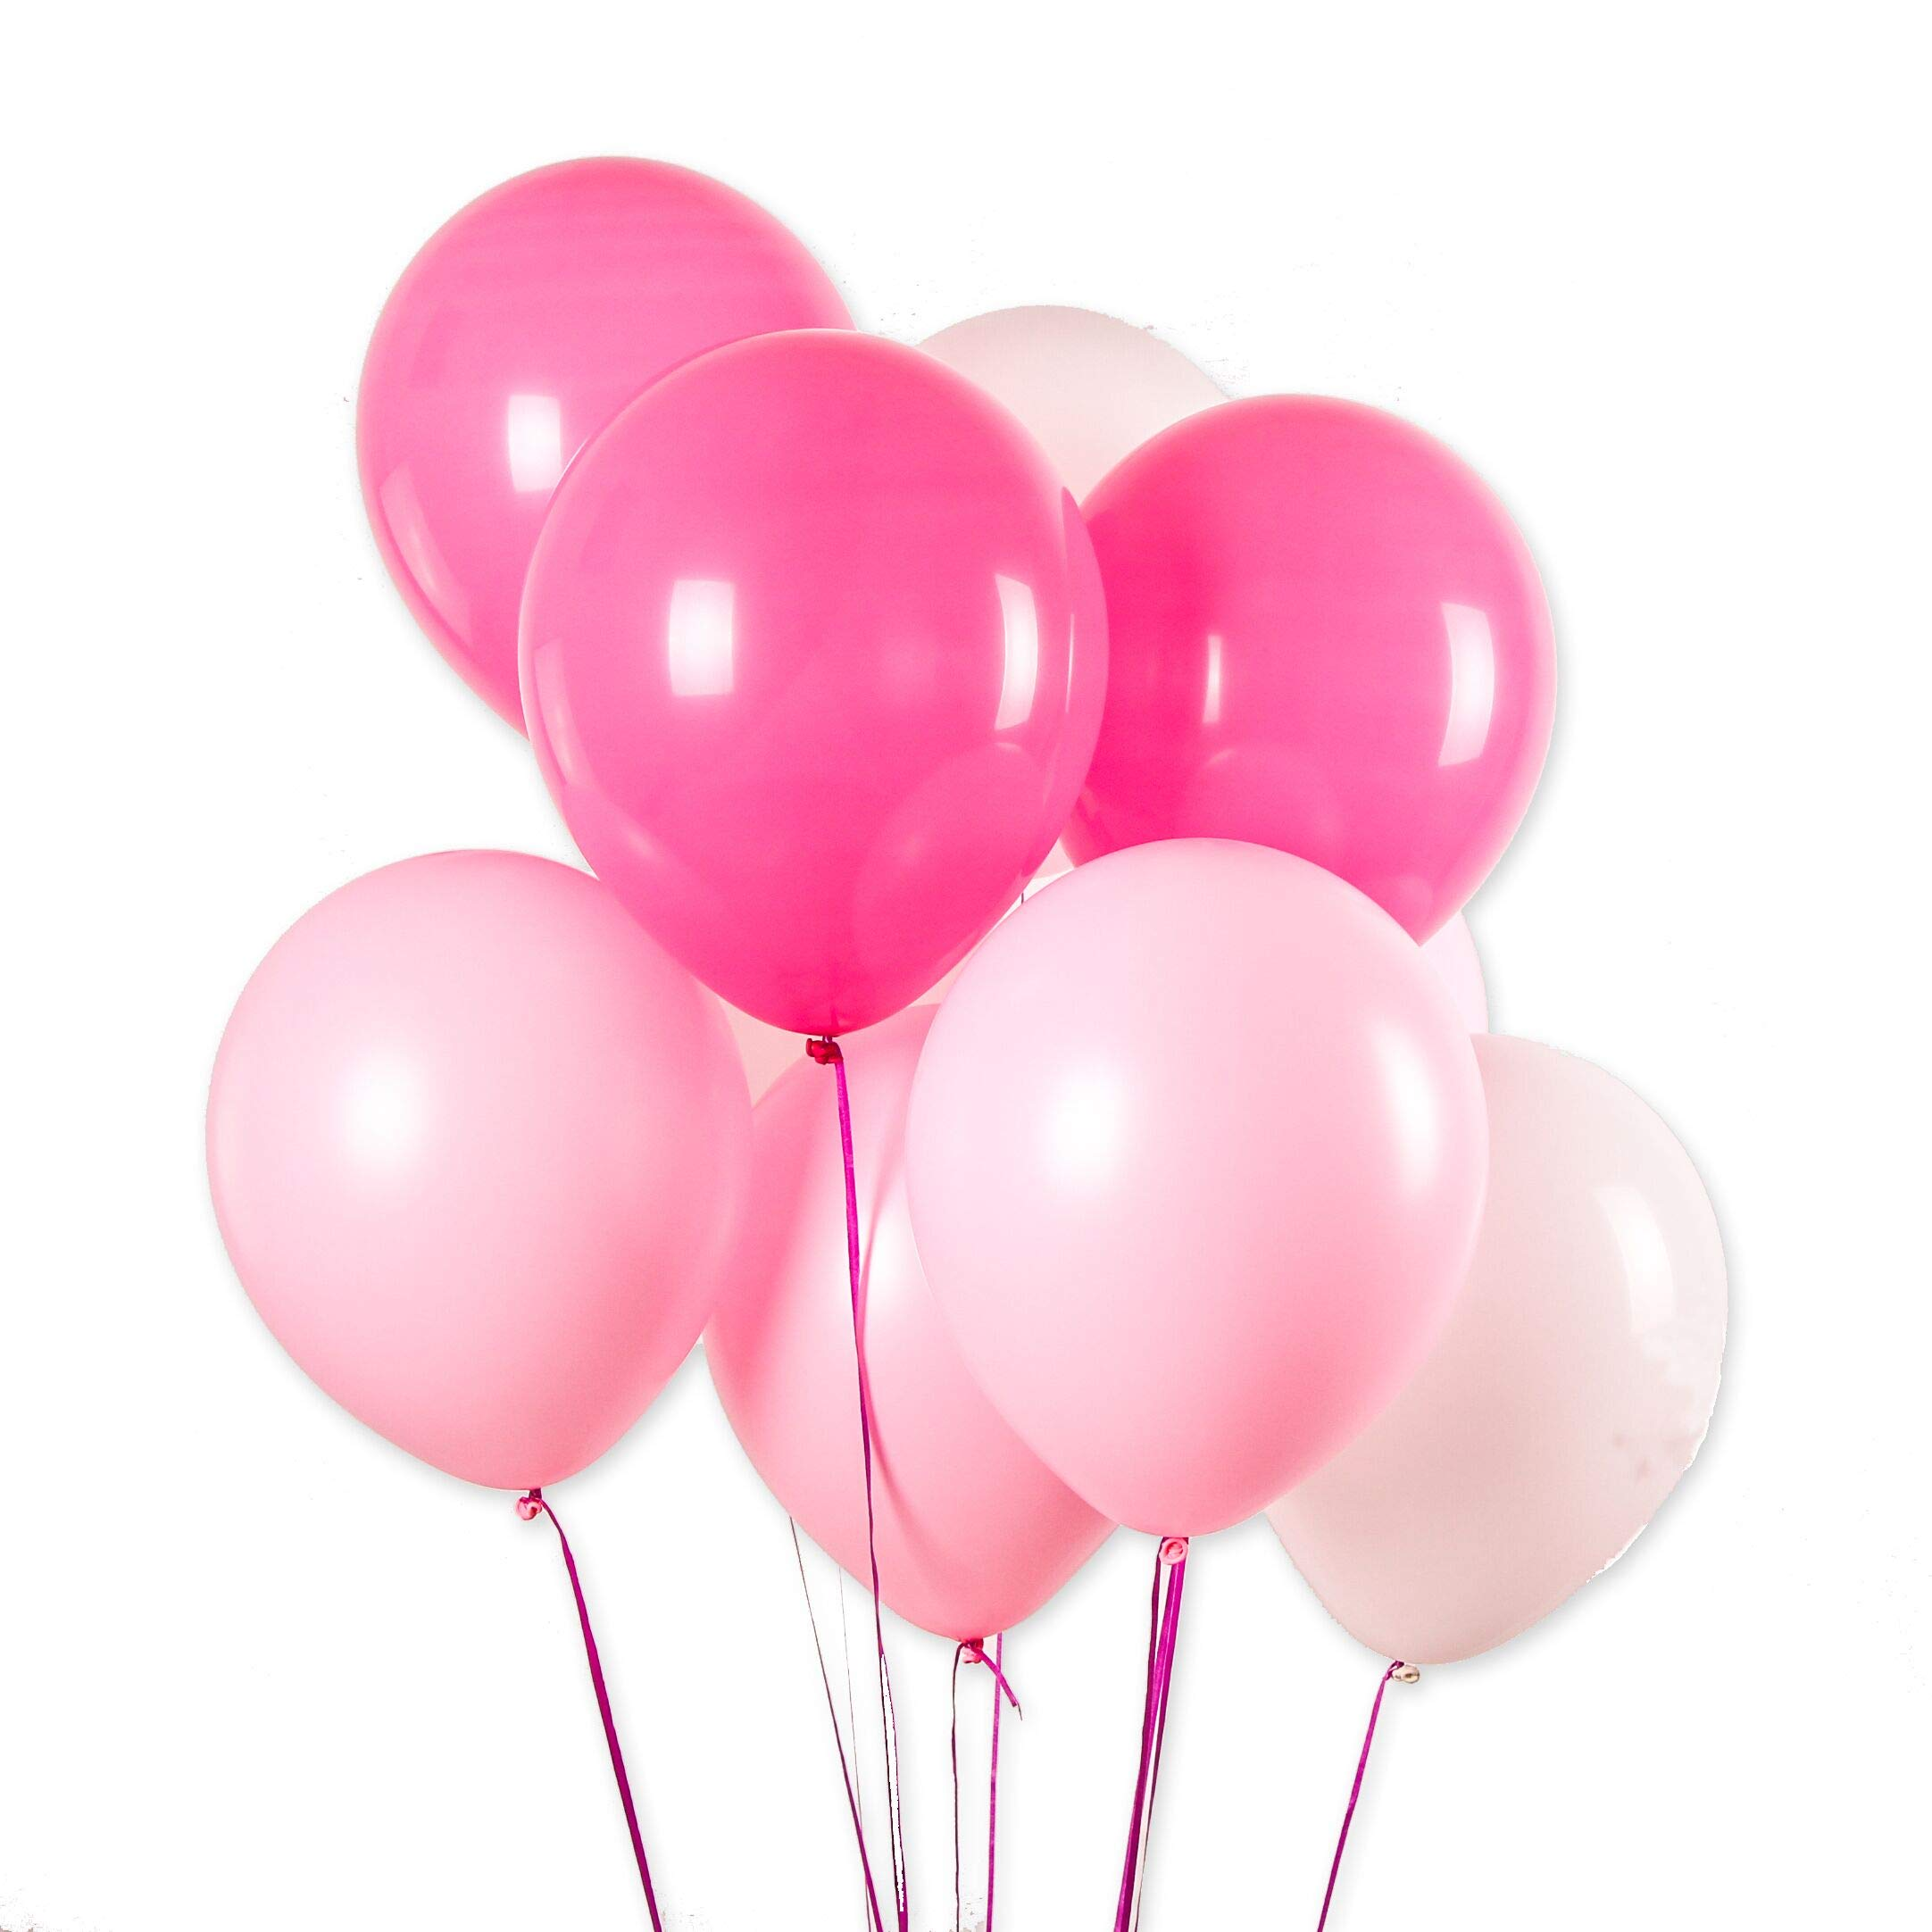 Valentine's Day Balloon,100 Pcs 12 inch 3.2 g Thicken Pearlized Latex Balloons for Girl Birthday Party Wedding Decorations and Proposal Romantic Party Supplies (White+Pink Balloons+Rose Red Balloons)